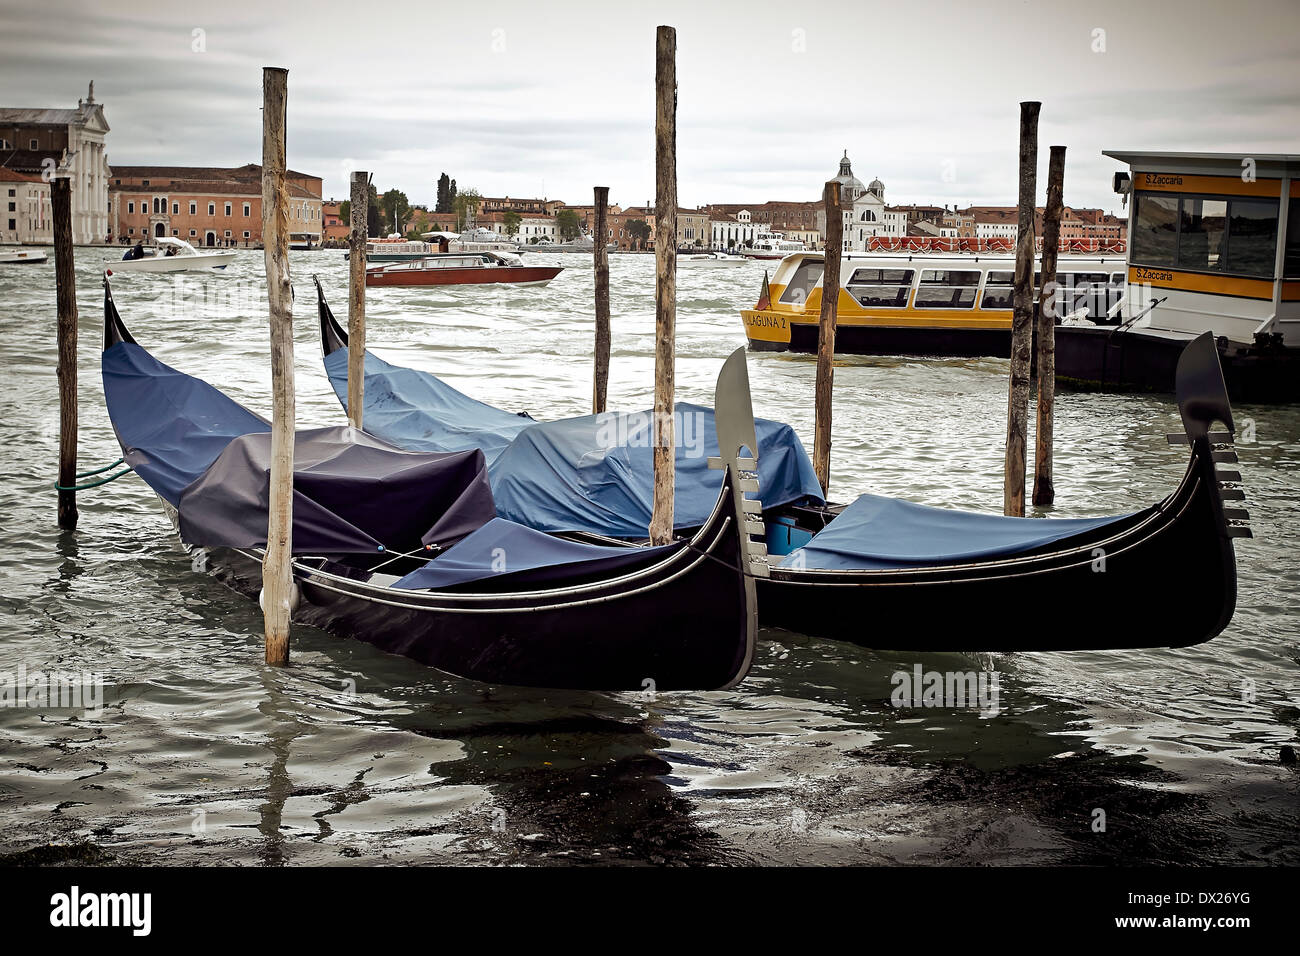 Gondolas moored in the lagoon in Venice, Italy on a gray day. Working boats are in the background. Stock Photo